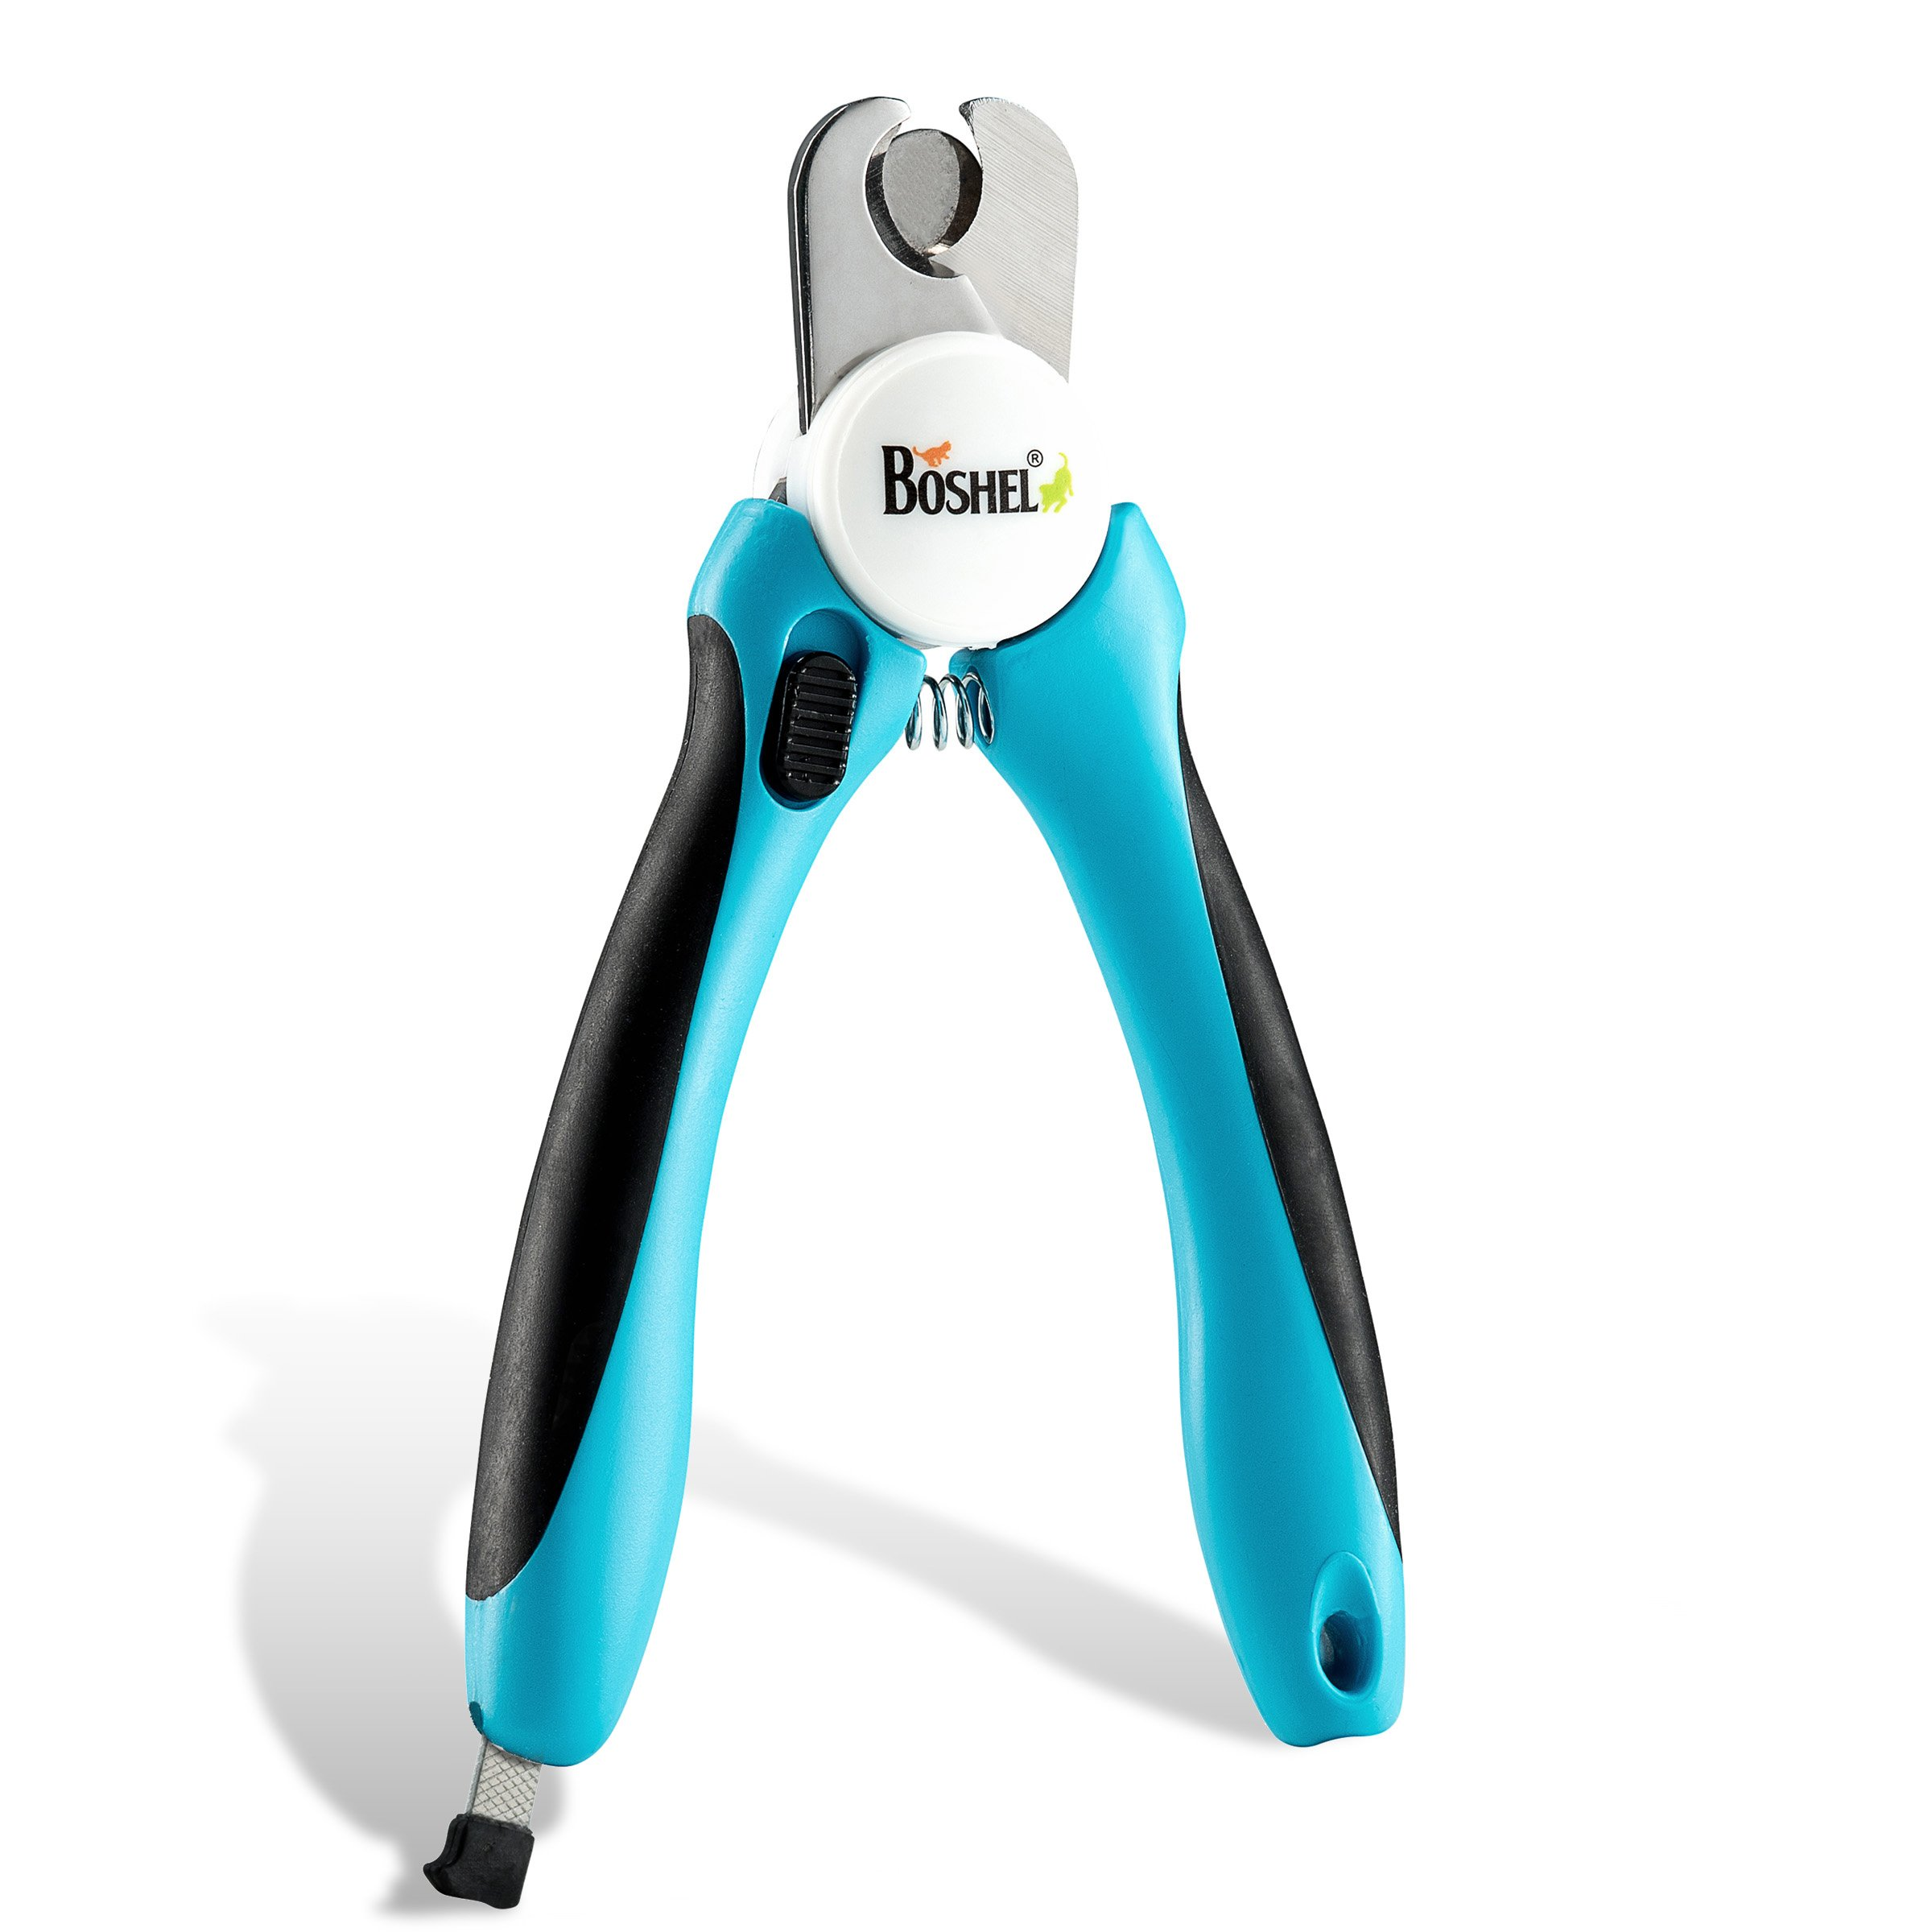 BOSHEL Dog Nail Clippers and Trimmer By With Safety Guard to Avoid Over-cutting Nails & Free Nail File - Razor Sharp Blades - Sturdy Non Slip Handles - For Safe, Professional At Home Grooming by BOSHEL (Image #1)